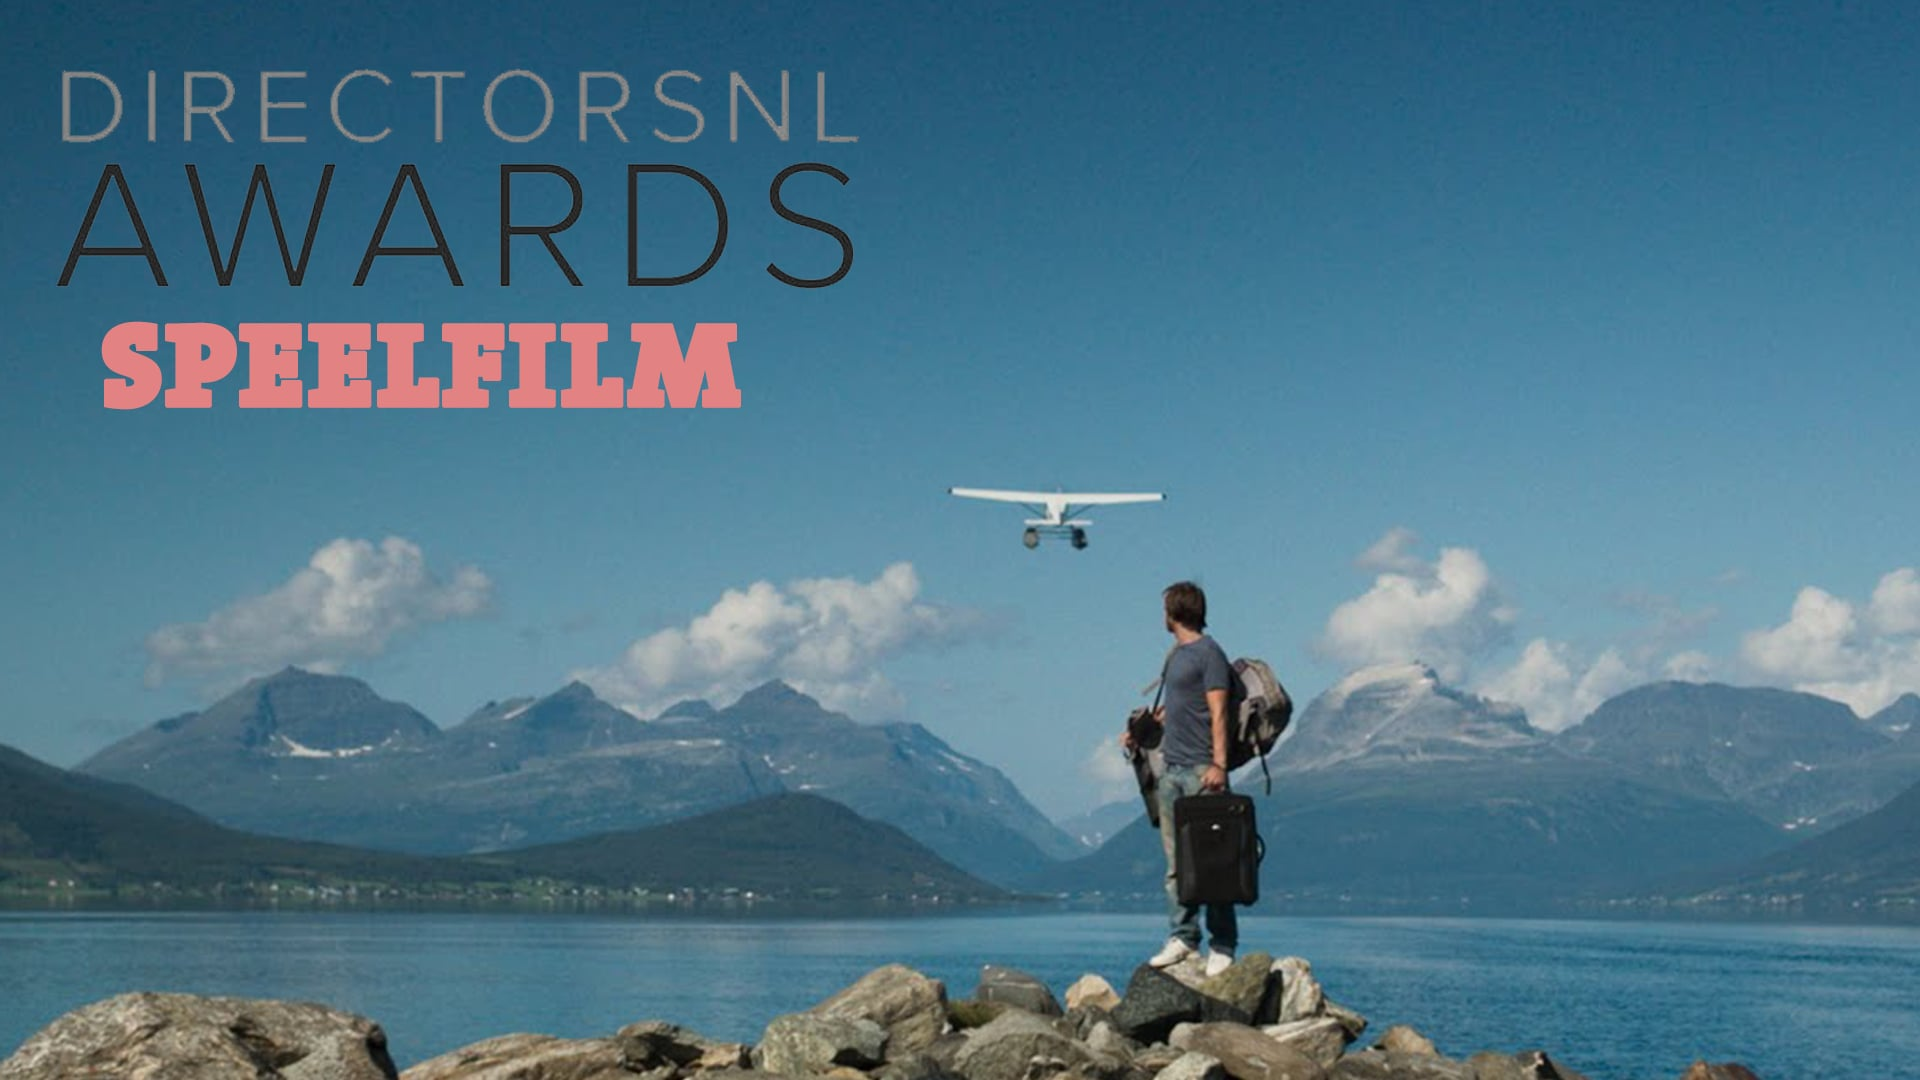 DirectorsNL Awards: Speelfilm